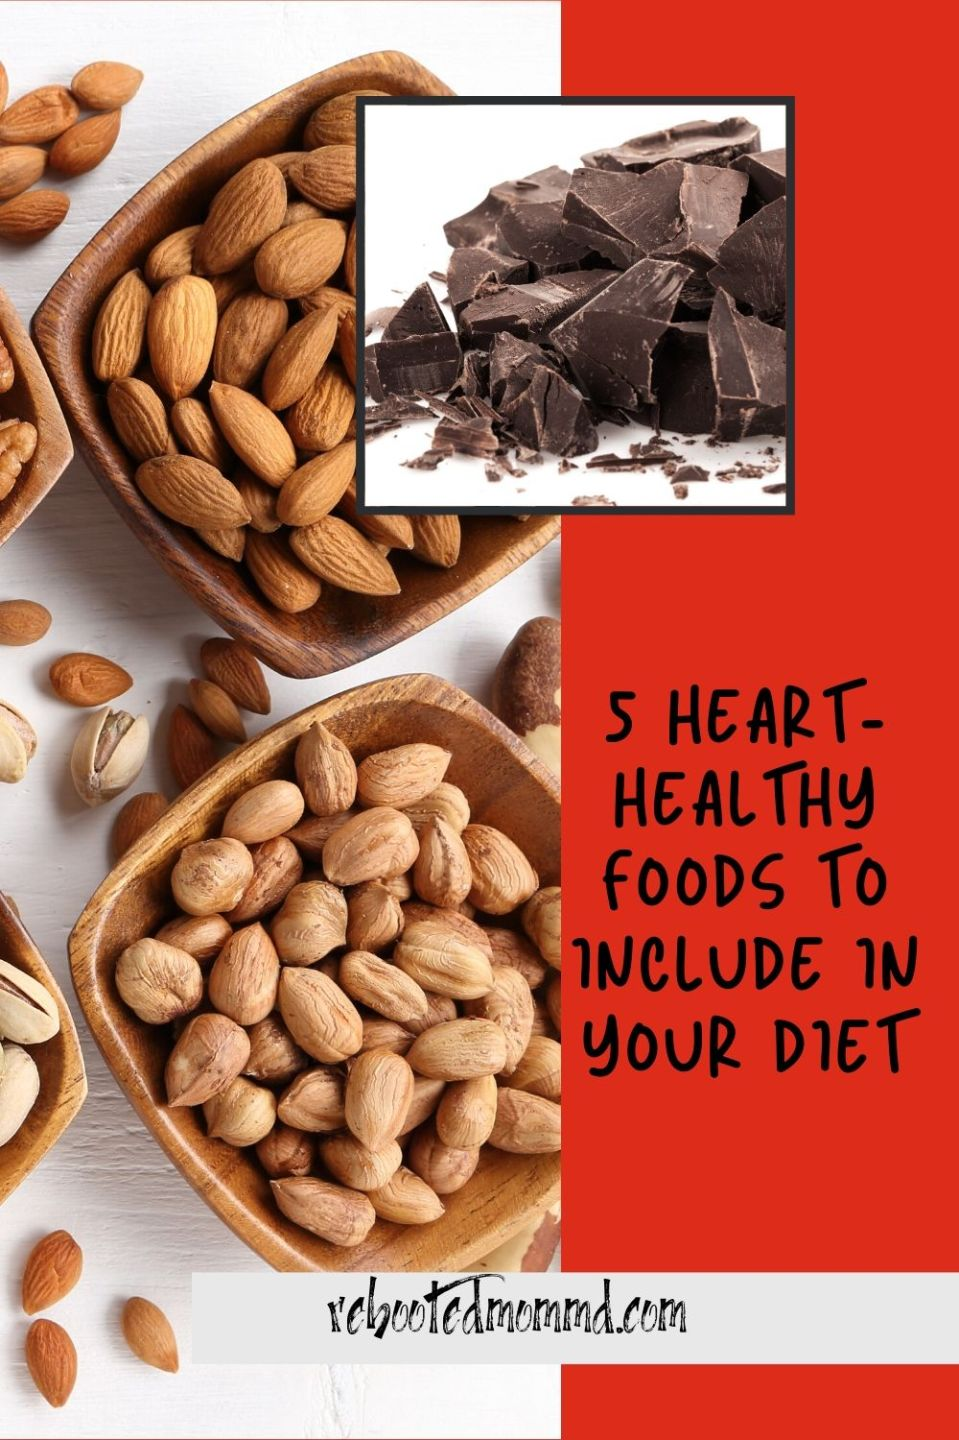 Include These 5 Heart-Healthy Foods into Your Diet